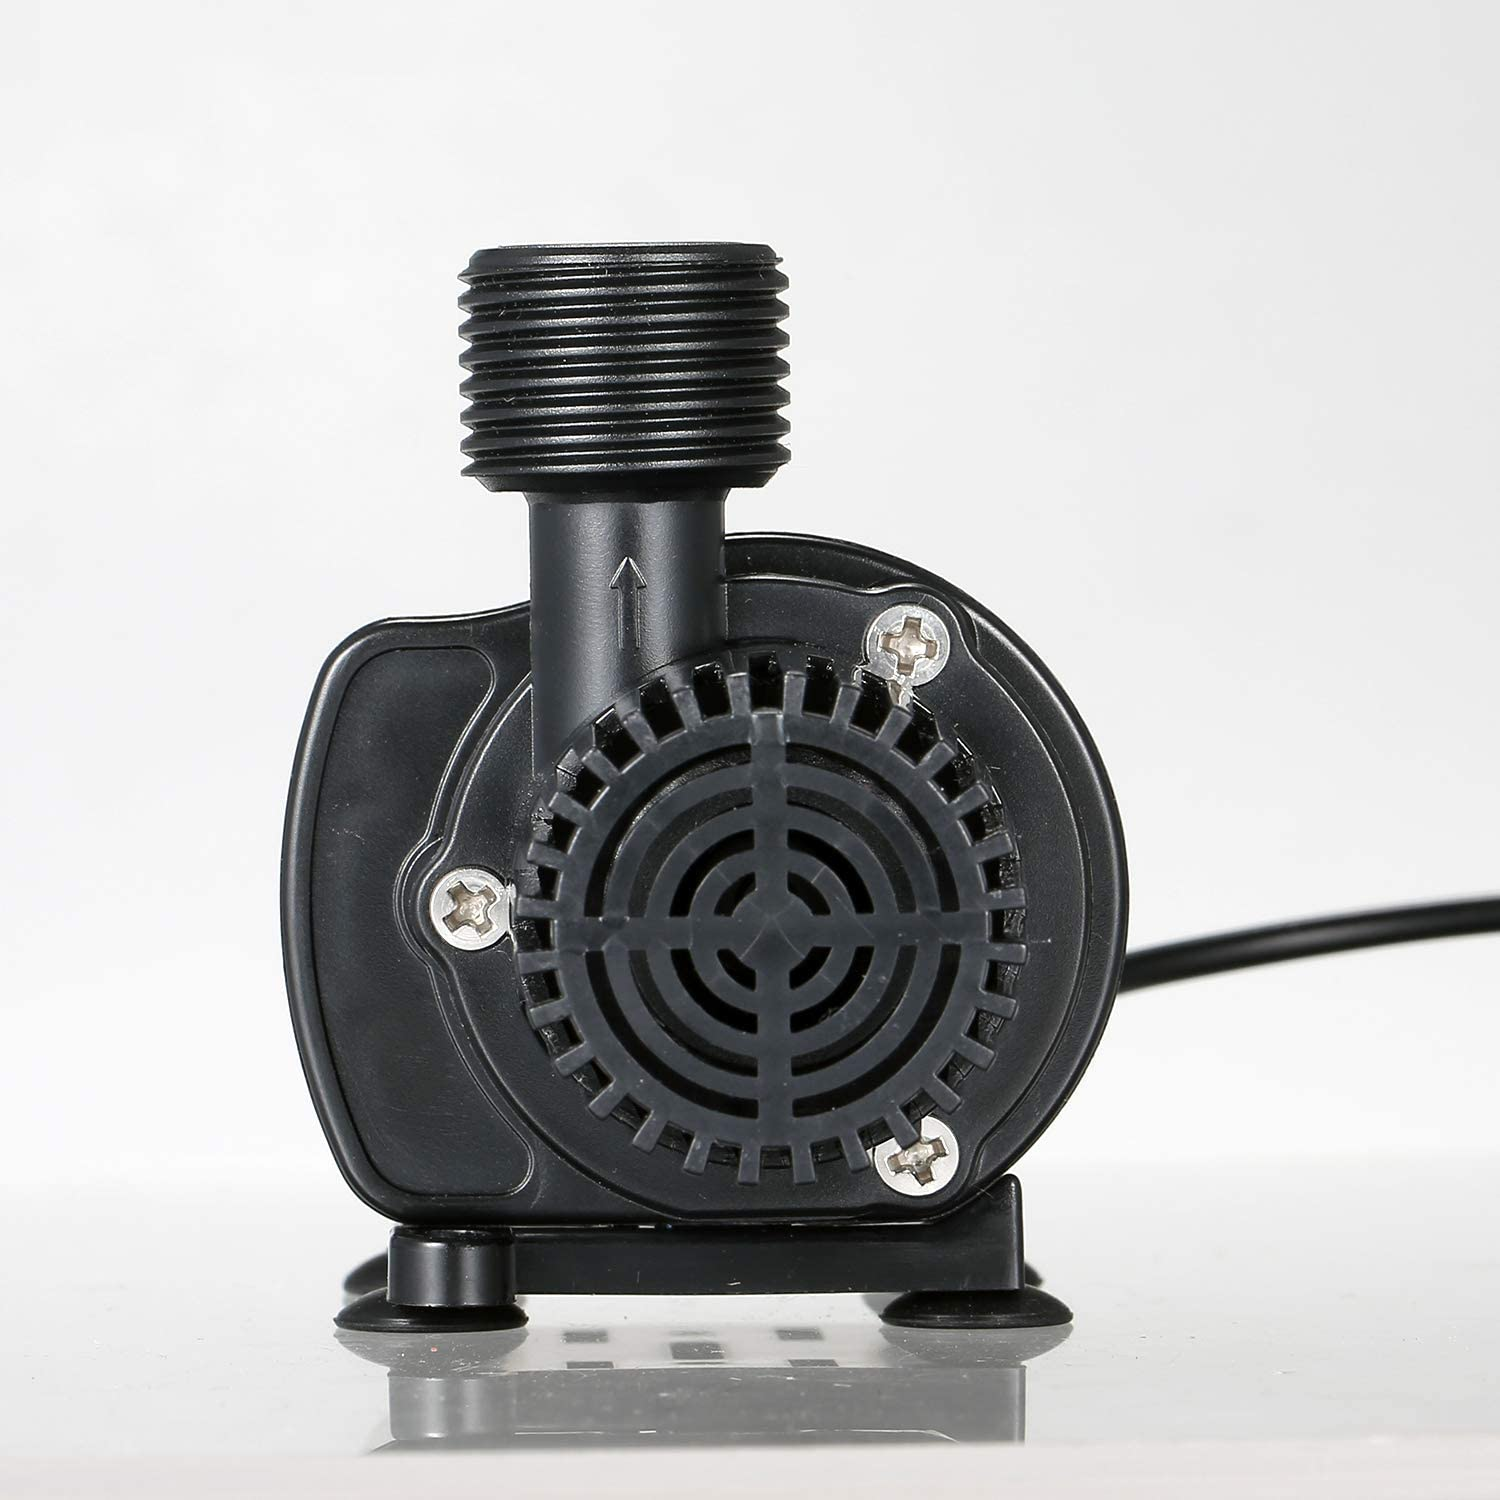 Decdeal Water Pump with Strainer Ultra-quiet DC12V Micro Brushless Water Oil Pump Waterproof Submersible Fountain Pump Aquarium Pond Circulating 500L//H 4W Lift 5.9ft